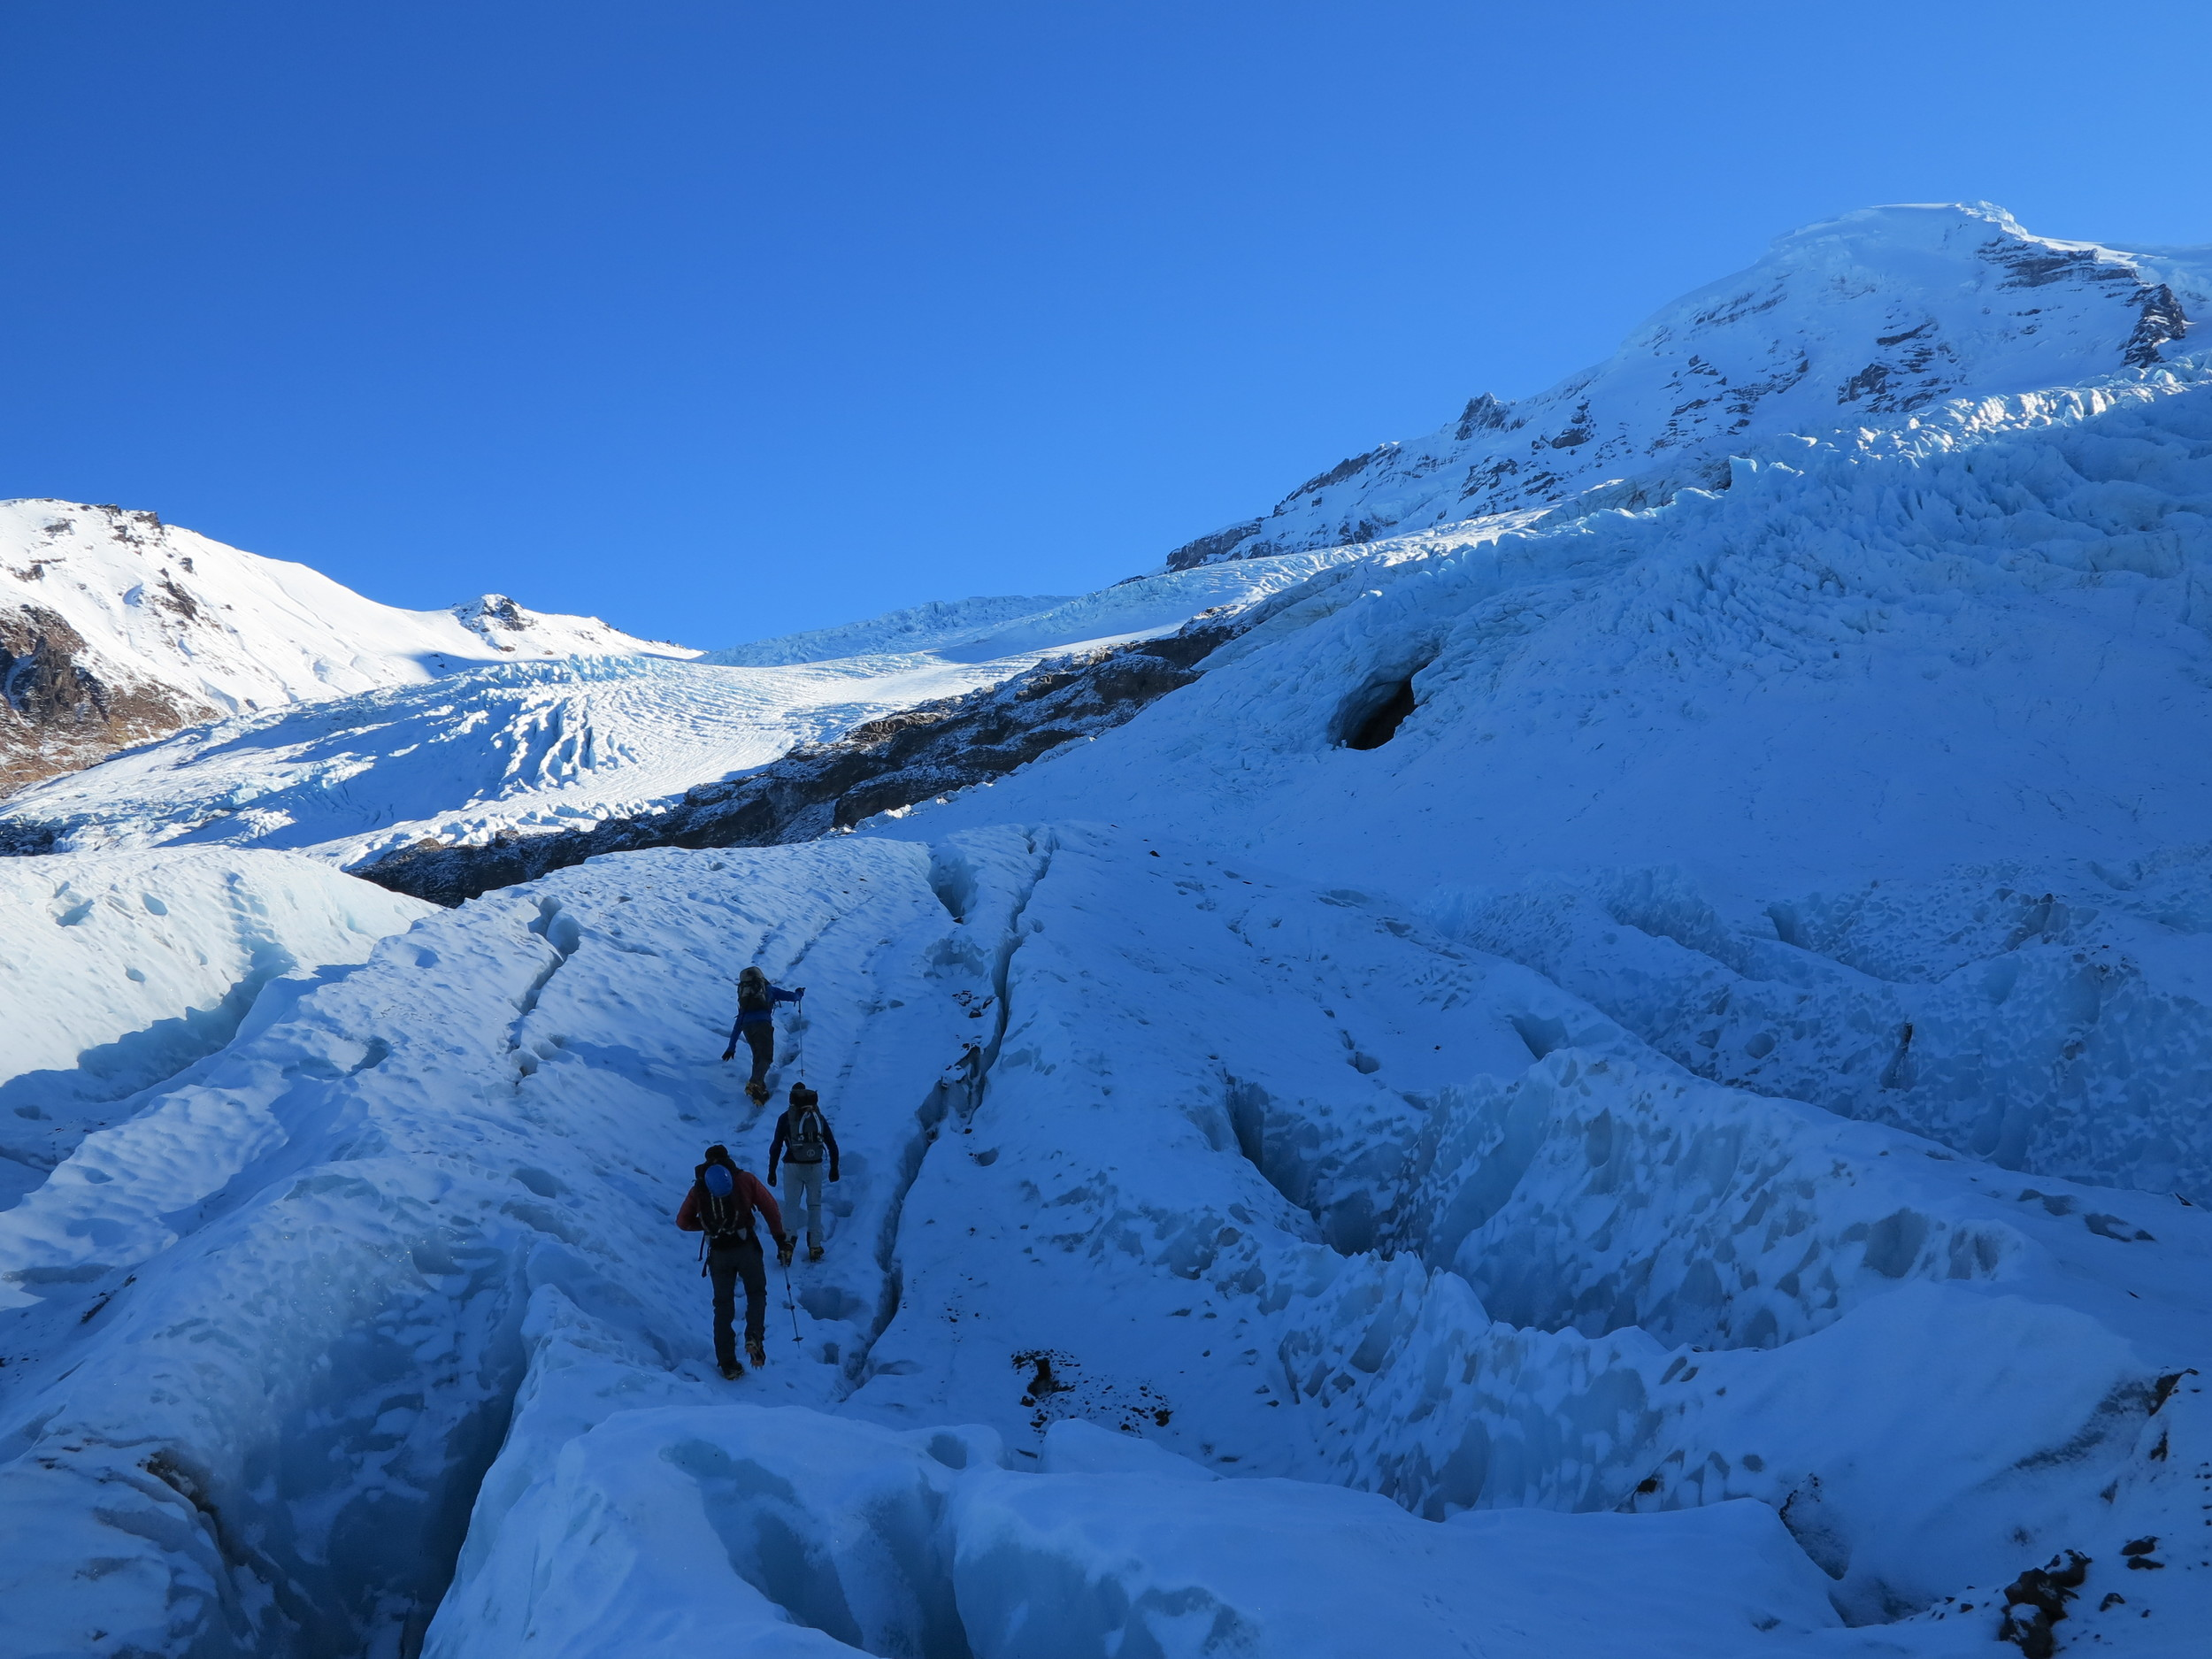 Approaching the seracs on the Lower Coleman Glacier on Mount Baker, WA. Photo: Erin Smart